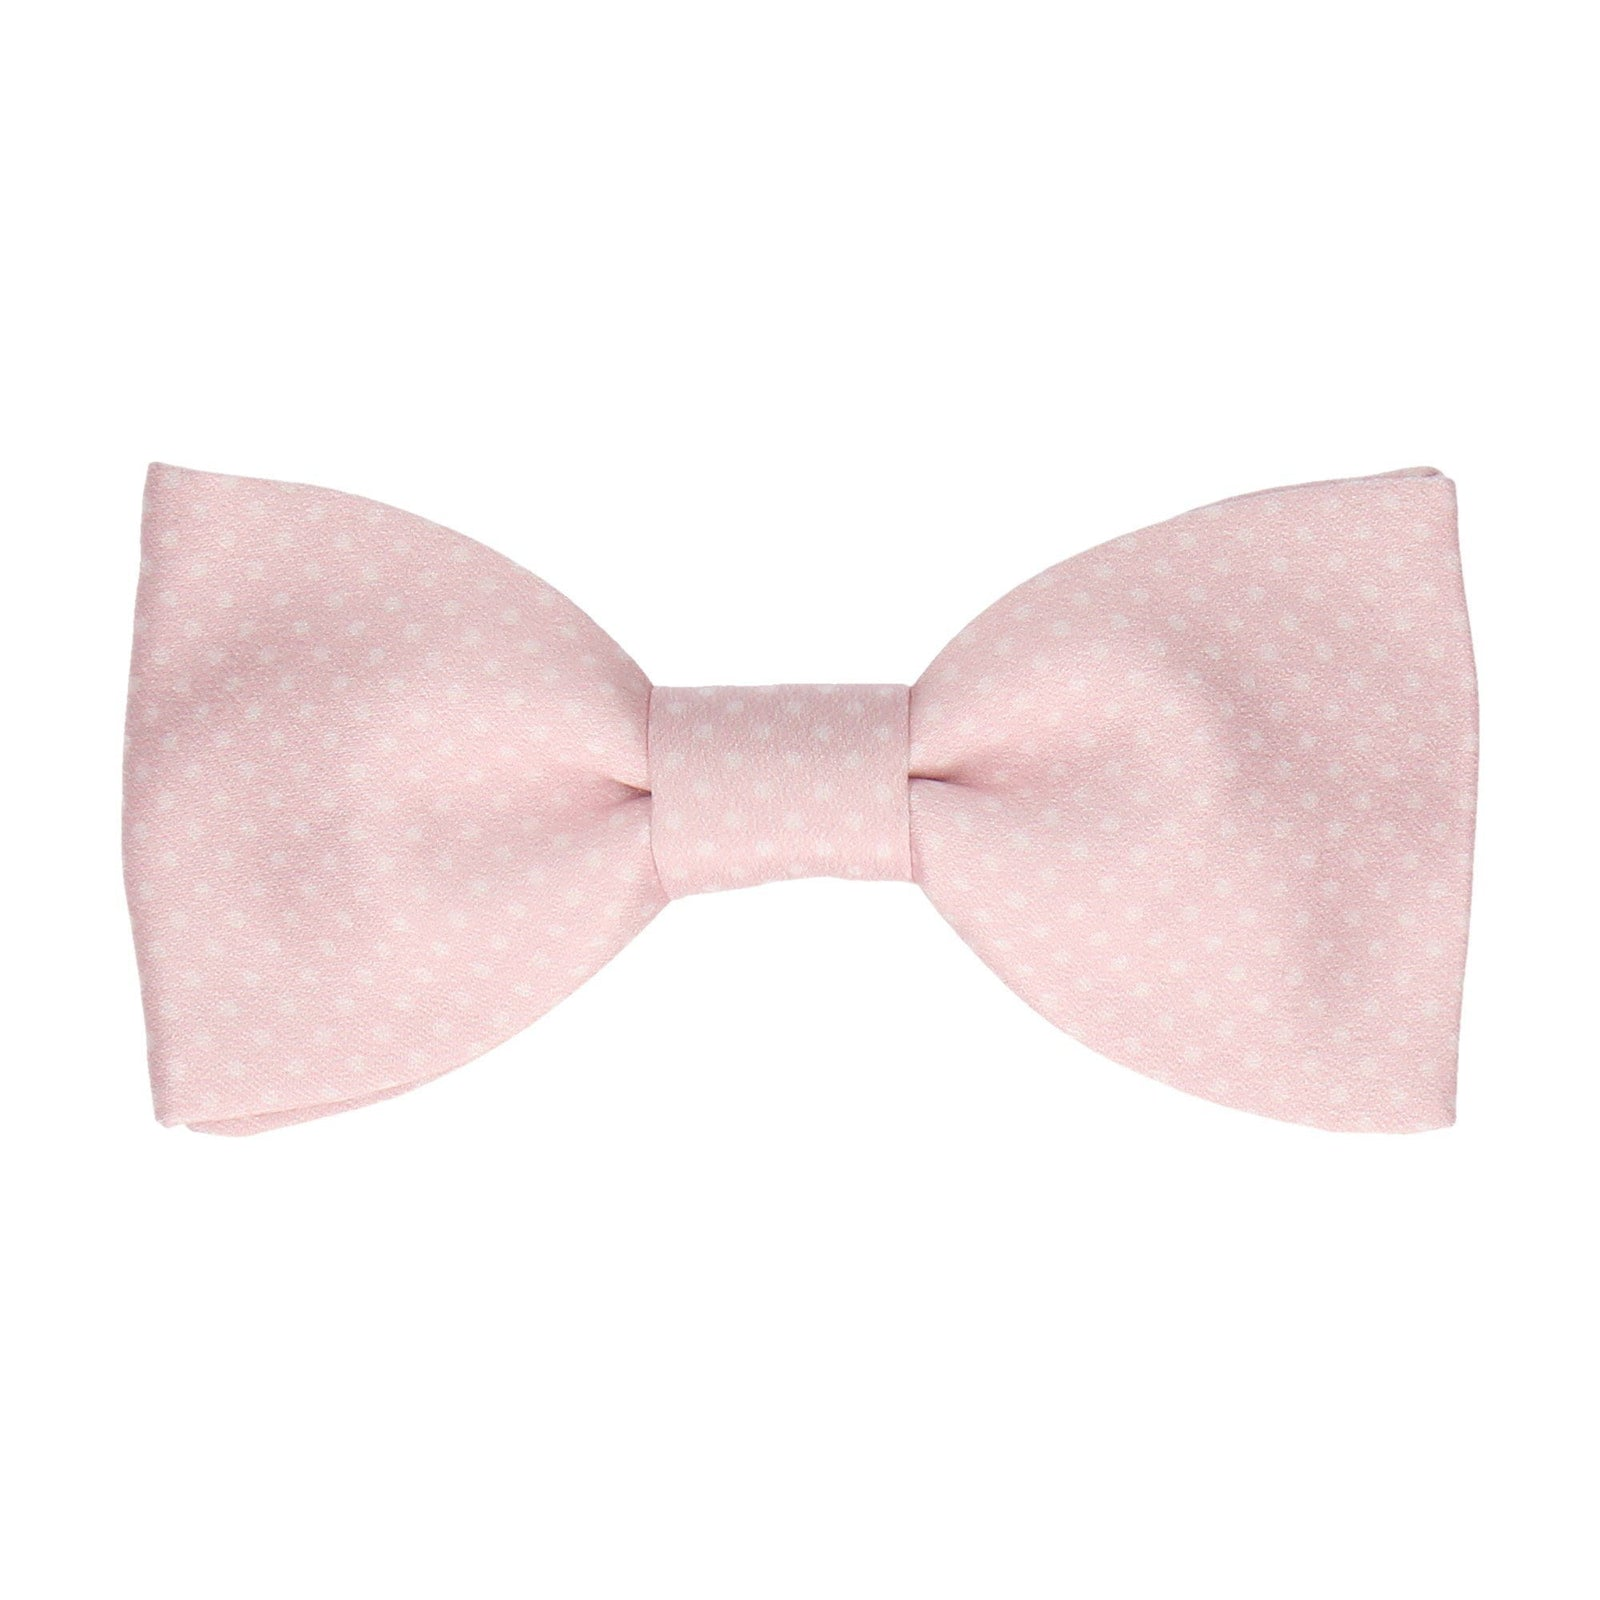 Dickinson Dots Soft Blush Pink Bow Tie (Outlet)